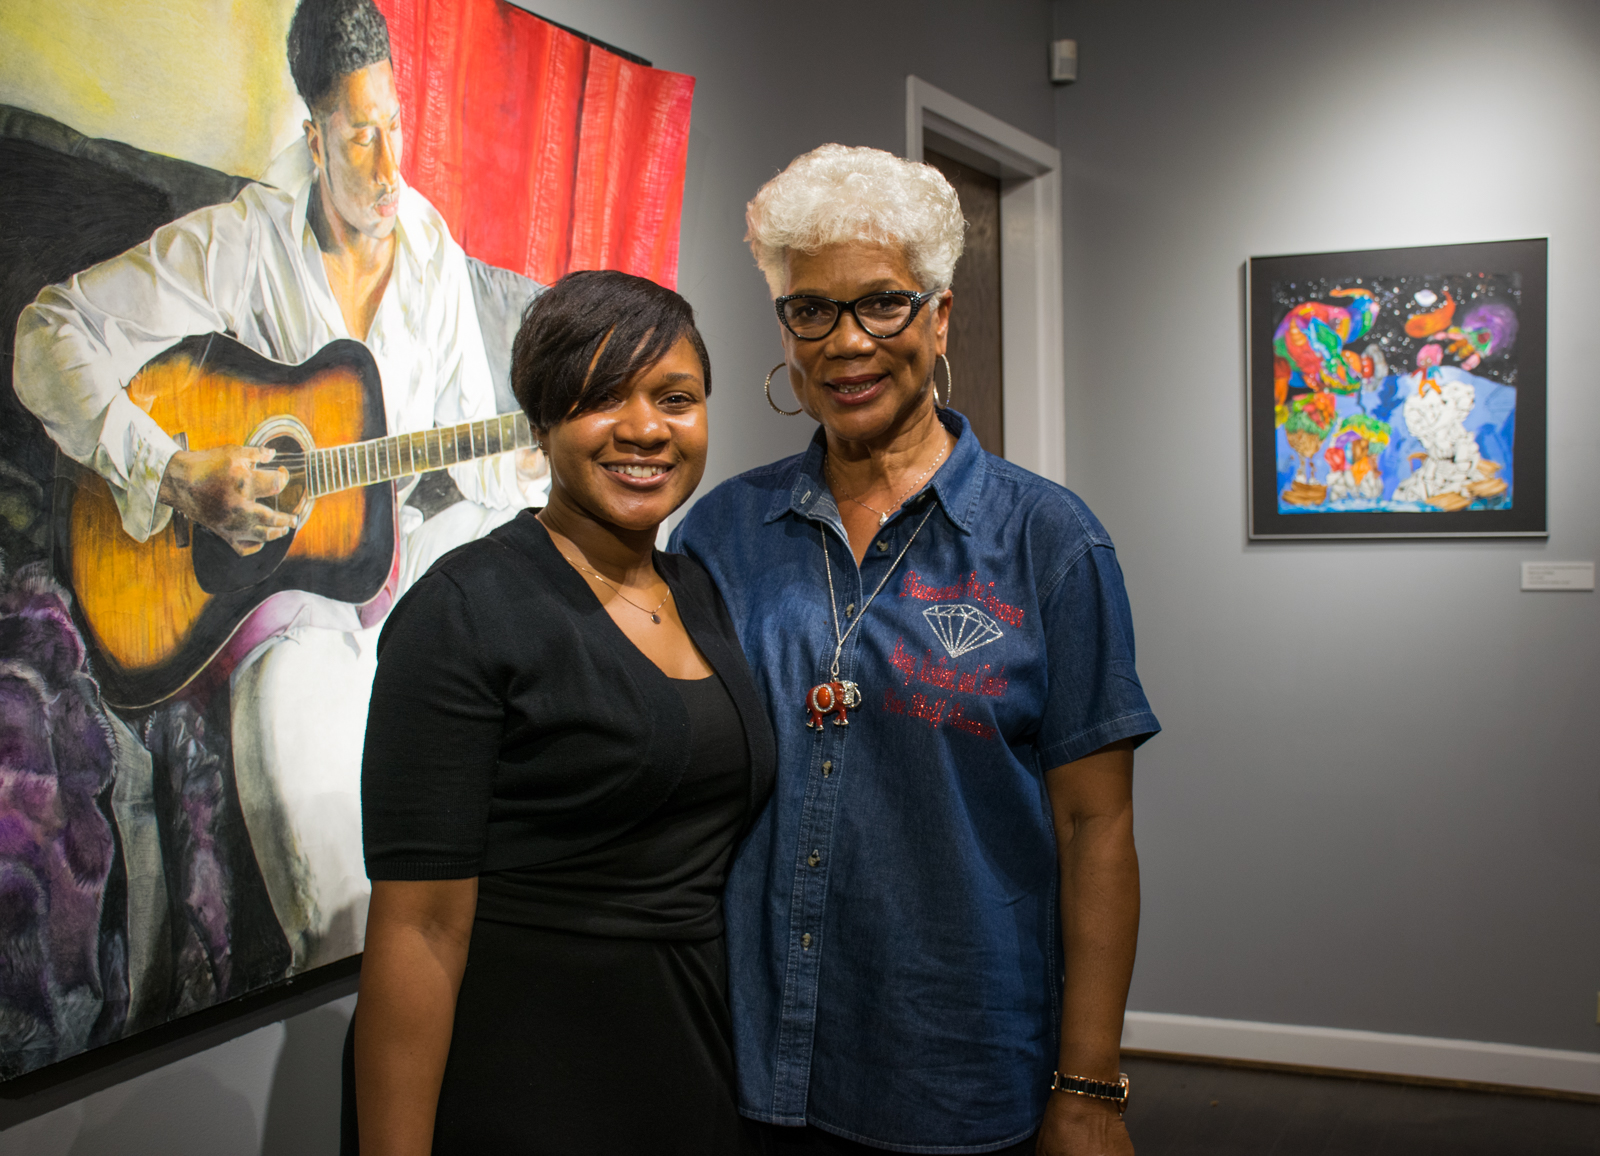 Pine Bluff High School teacher Shalisha Thomas (left), curated the 2018 exhibit of her students' works. She took over from Virginia Hymes (right), who retired last year after more than 40 years of teaching. Thomas is herself a former student of Hymes.